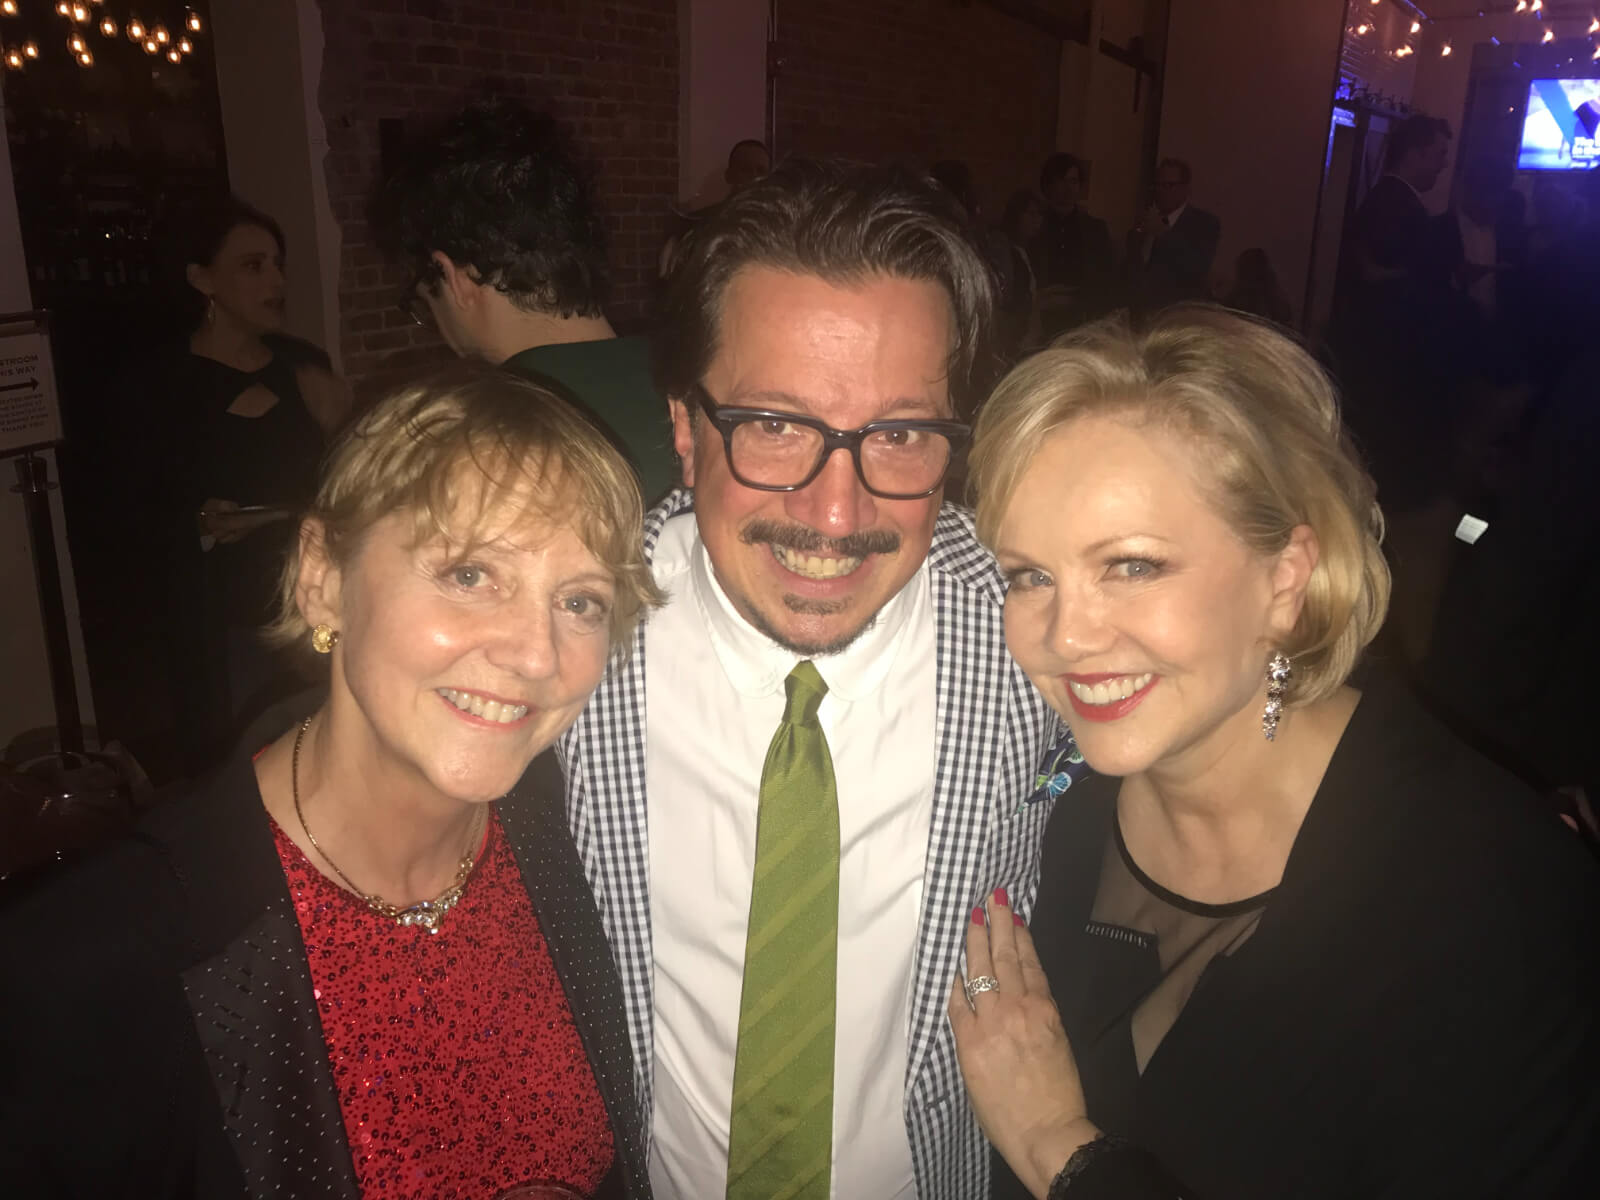 Associates Ginger Thatcher and Stacey Todd Holt with Director/Choreographer Susan Stroman. All are dressed elegantly: Ginger in red blouse, Stacey in green tie, and Stro in all blacks.